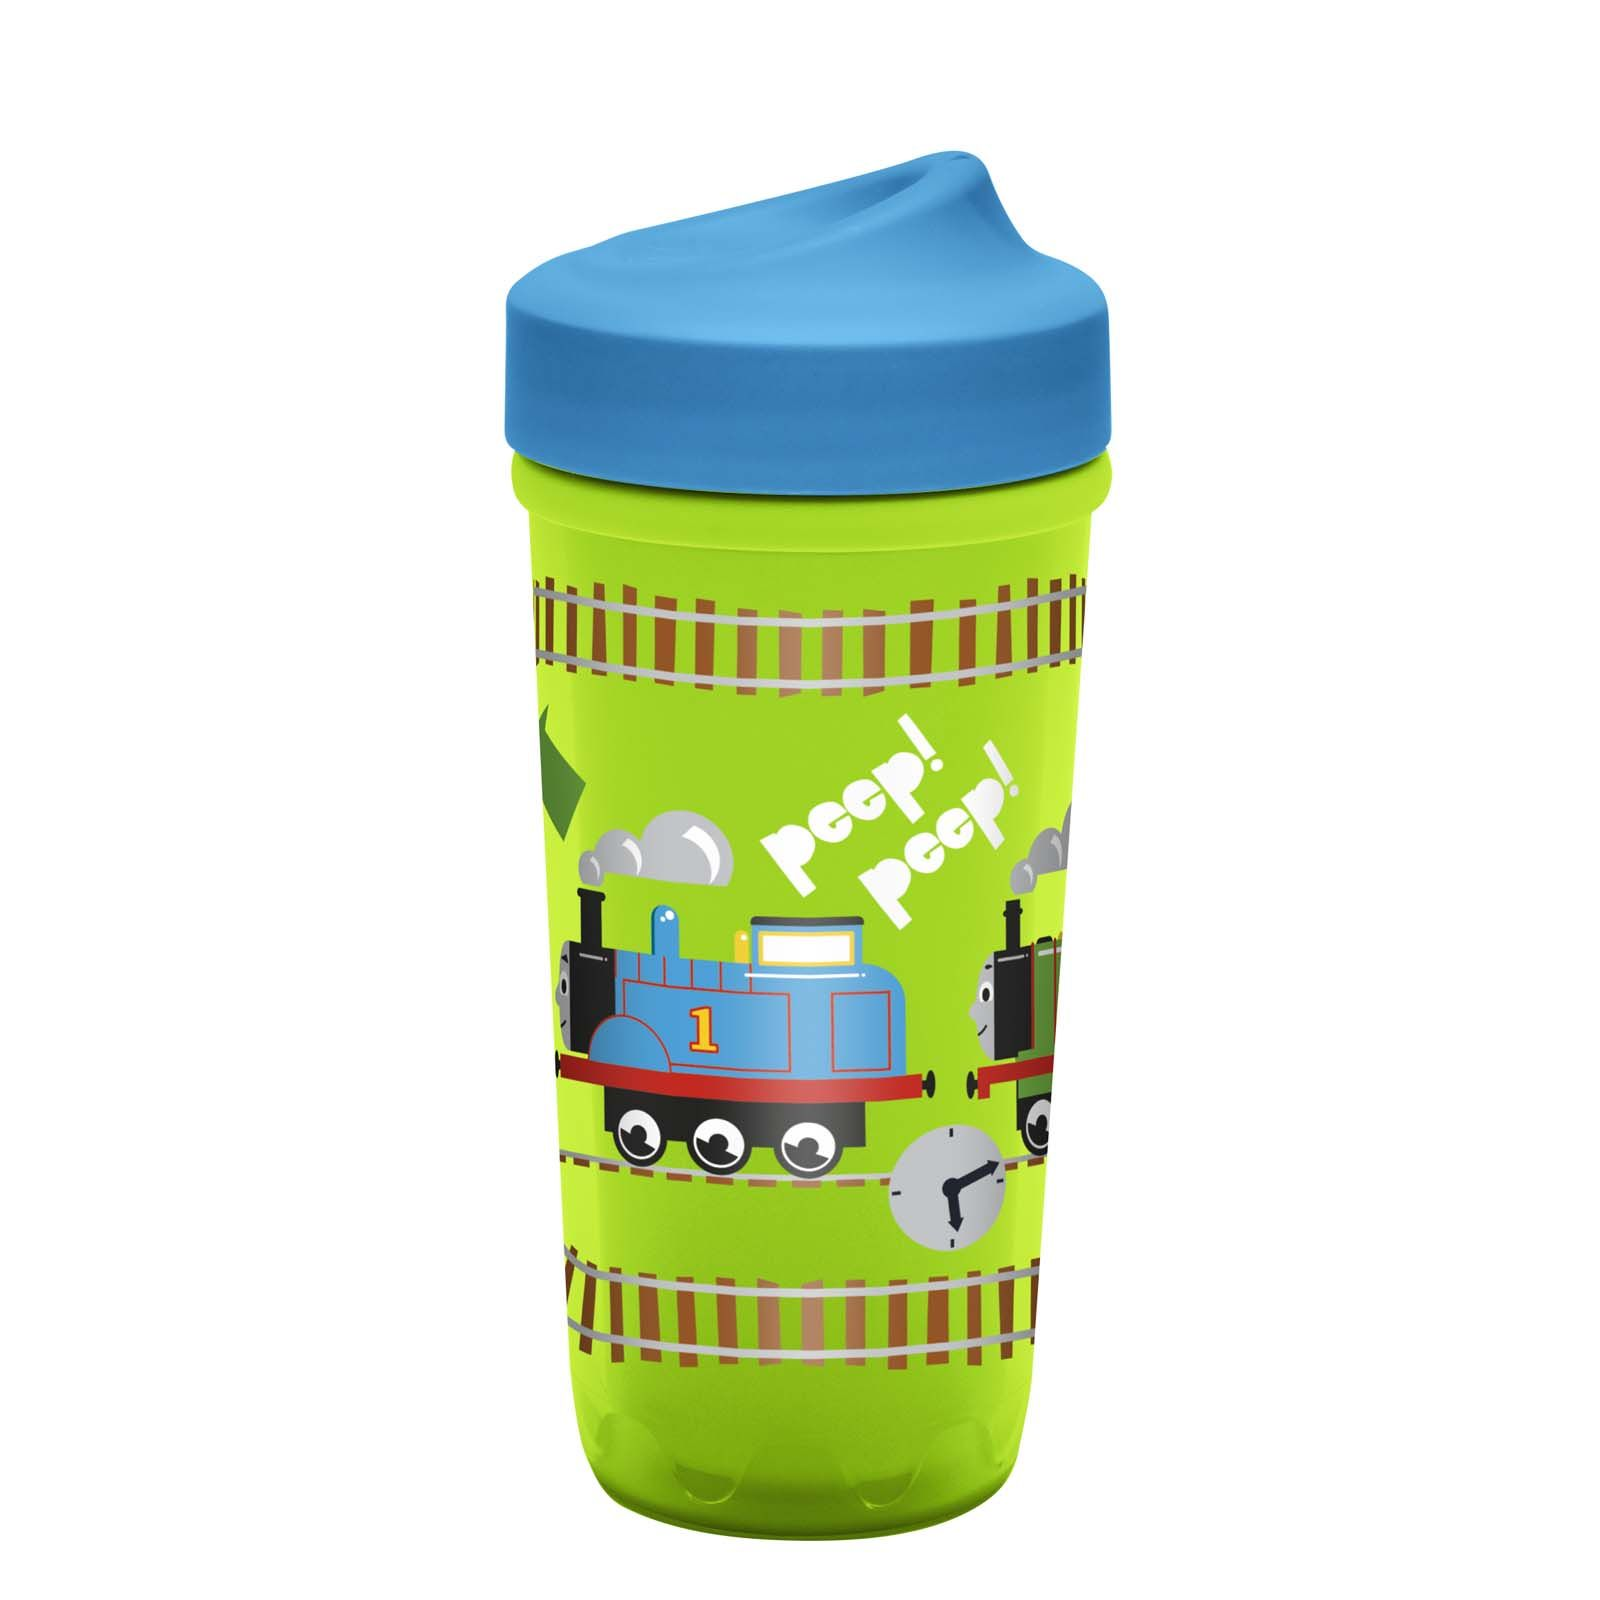 Thomas The Tank Engine Sippy Cup By Zak Sippy Cup Thomas And Friends Thomas The Tank Engine